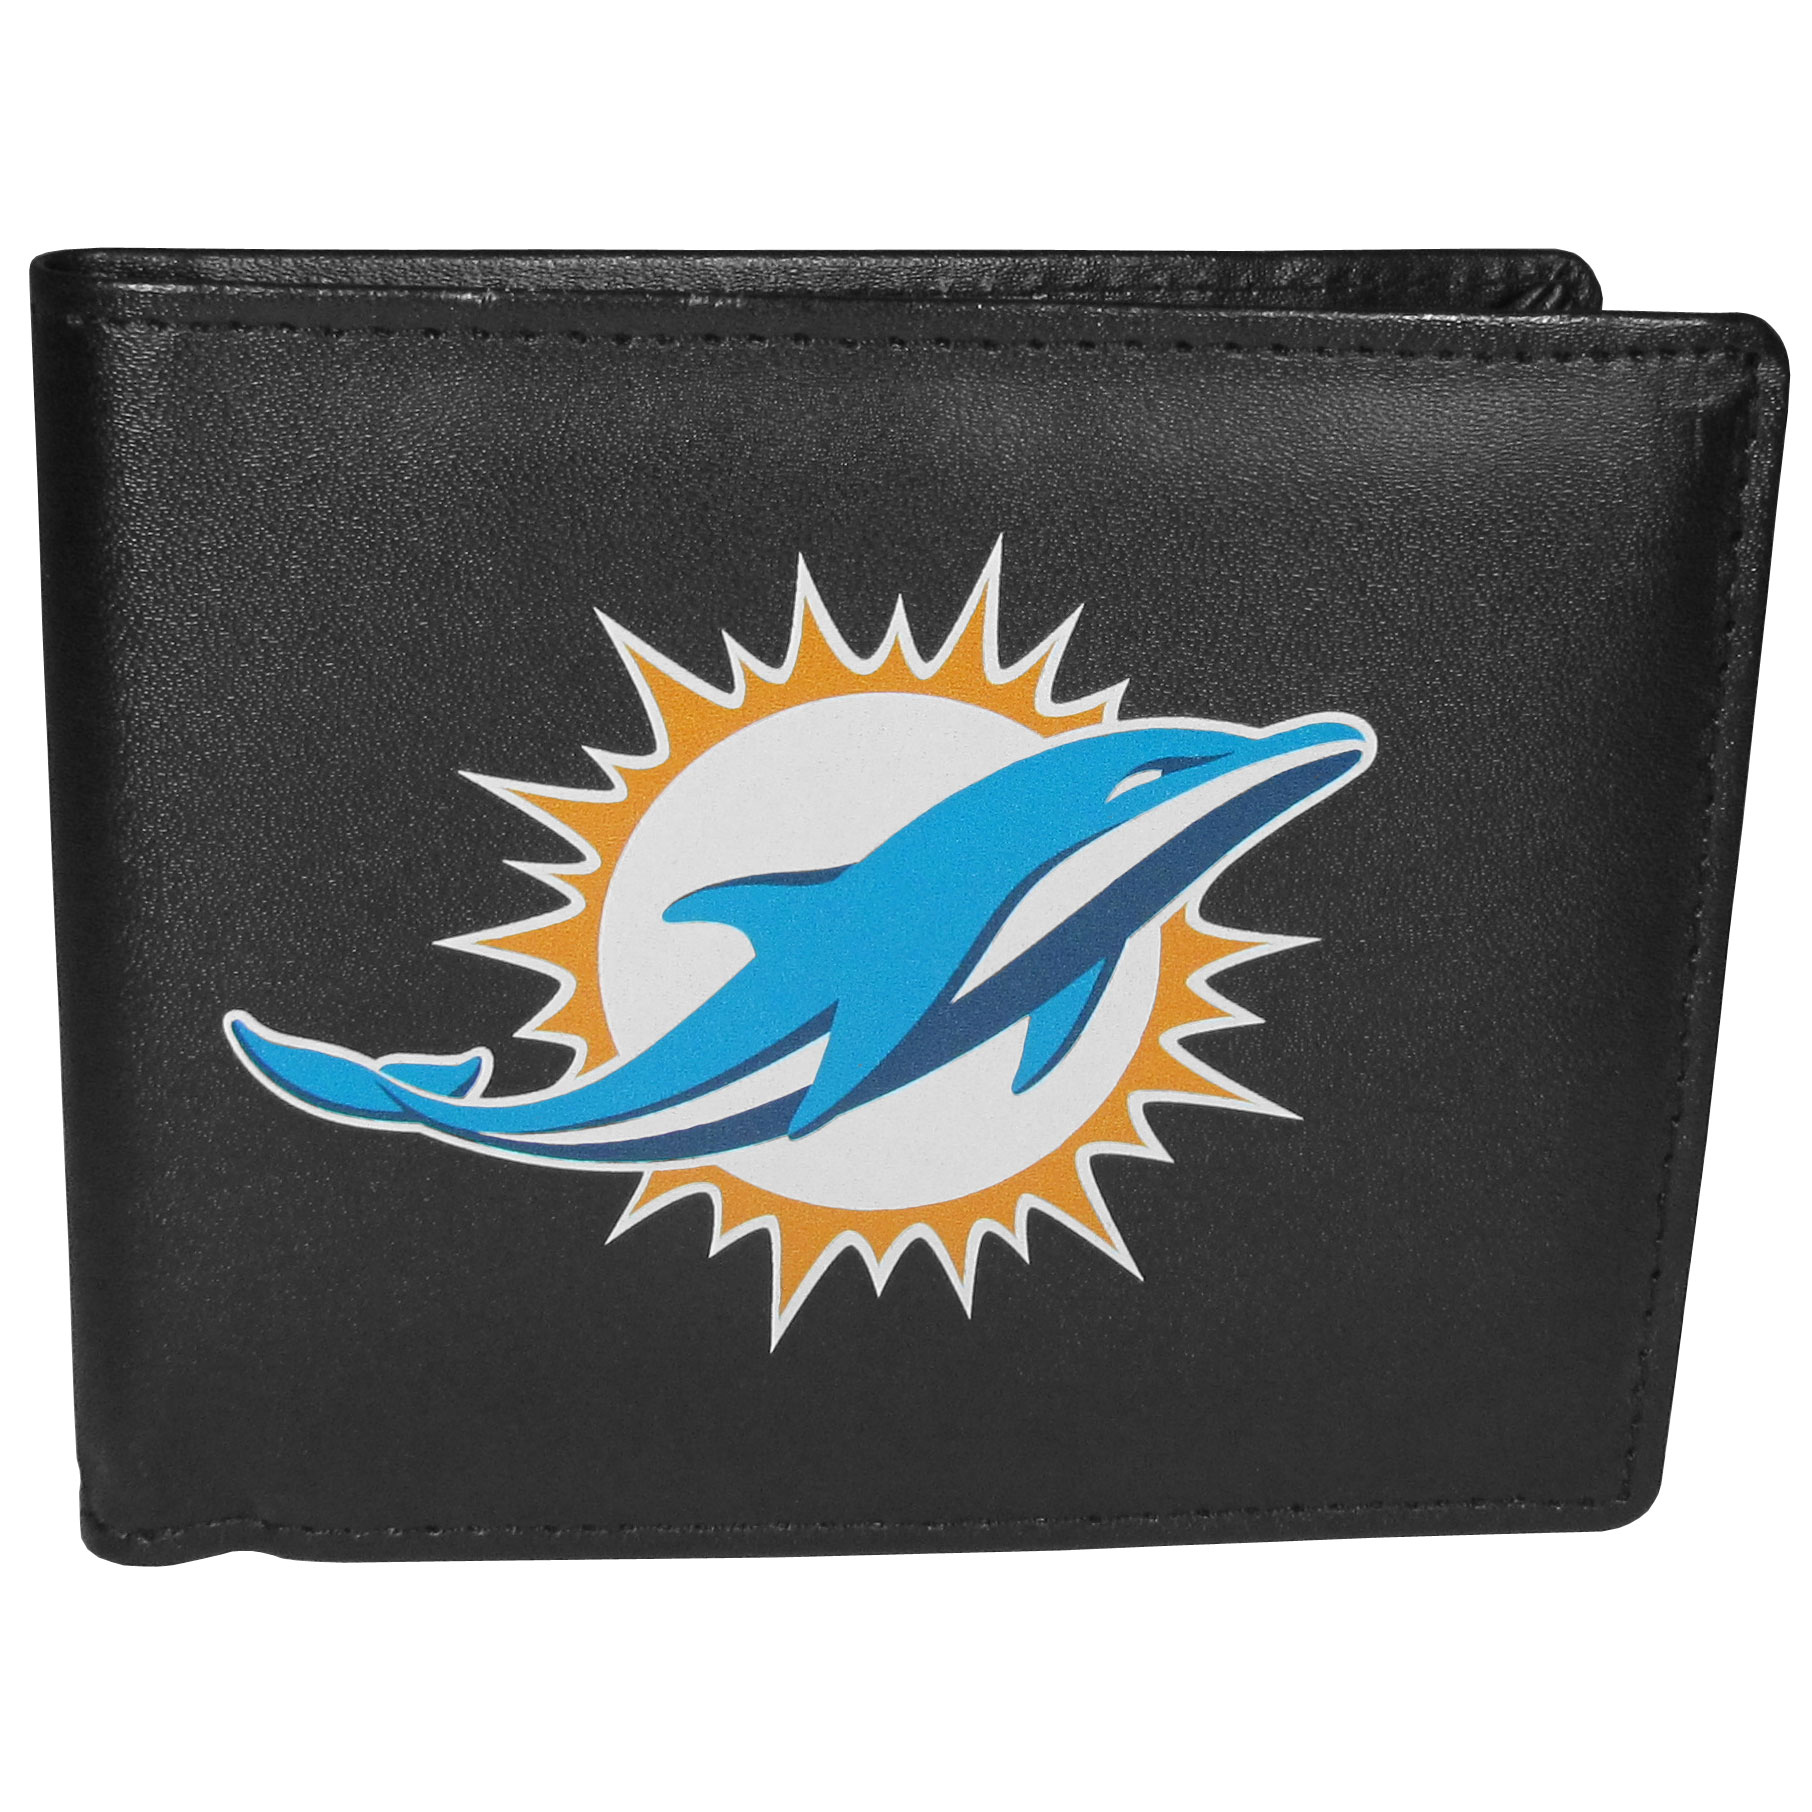 Miami Dolphins Bi-fold Wallet Large Logo - Sports fans do not have to sacrifice style with this classic bi-fold wallet that sports the Miami Dolphins?extra large logo. This men's fashion accessory has a leather grain look and expert craftmanship for a quality wallet at a great price. The wallet features inner credit card slots, windowed ID slot and a large billfold pocket. The front of the wallet features a printed team logo.